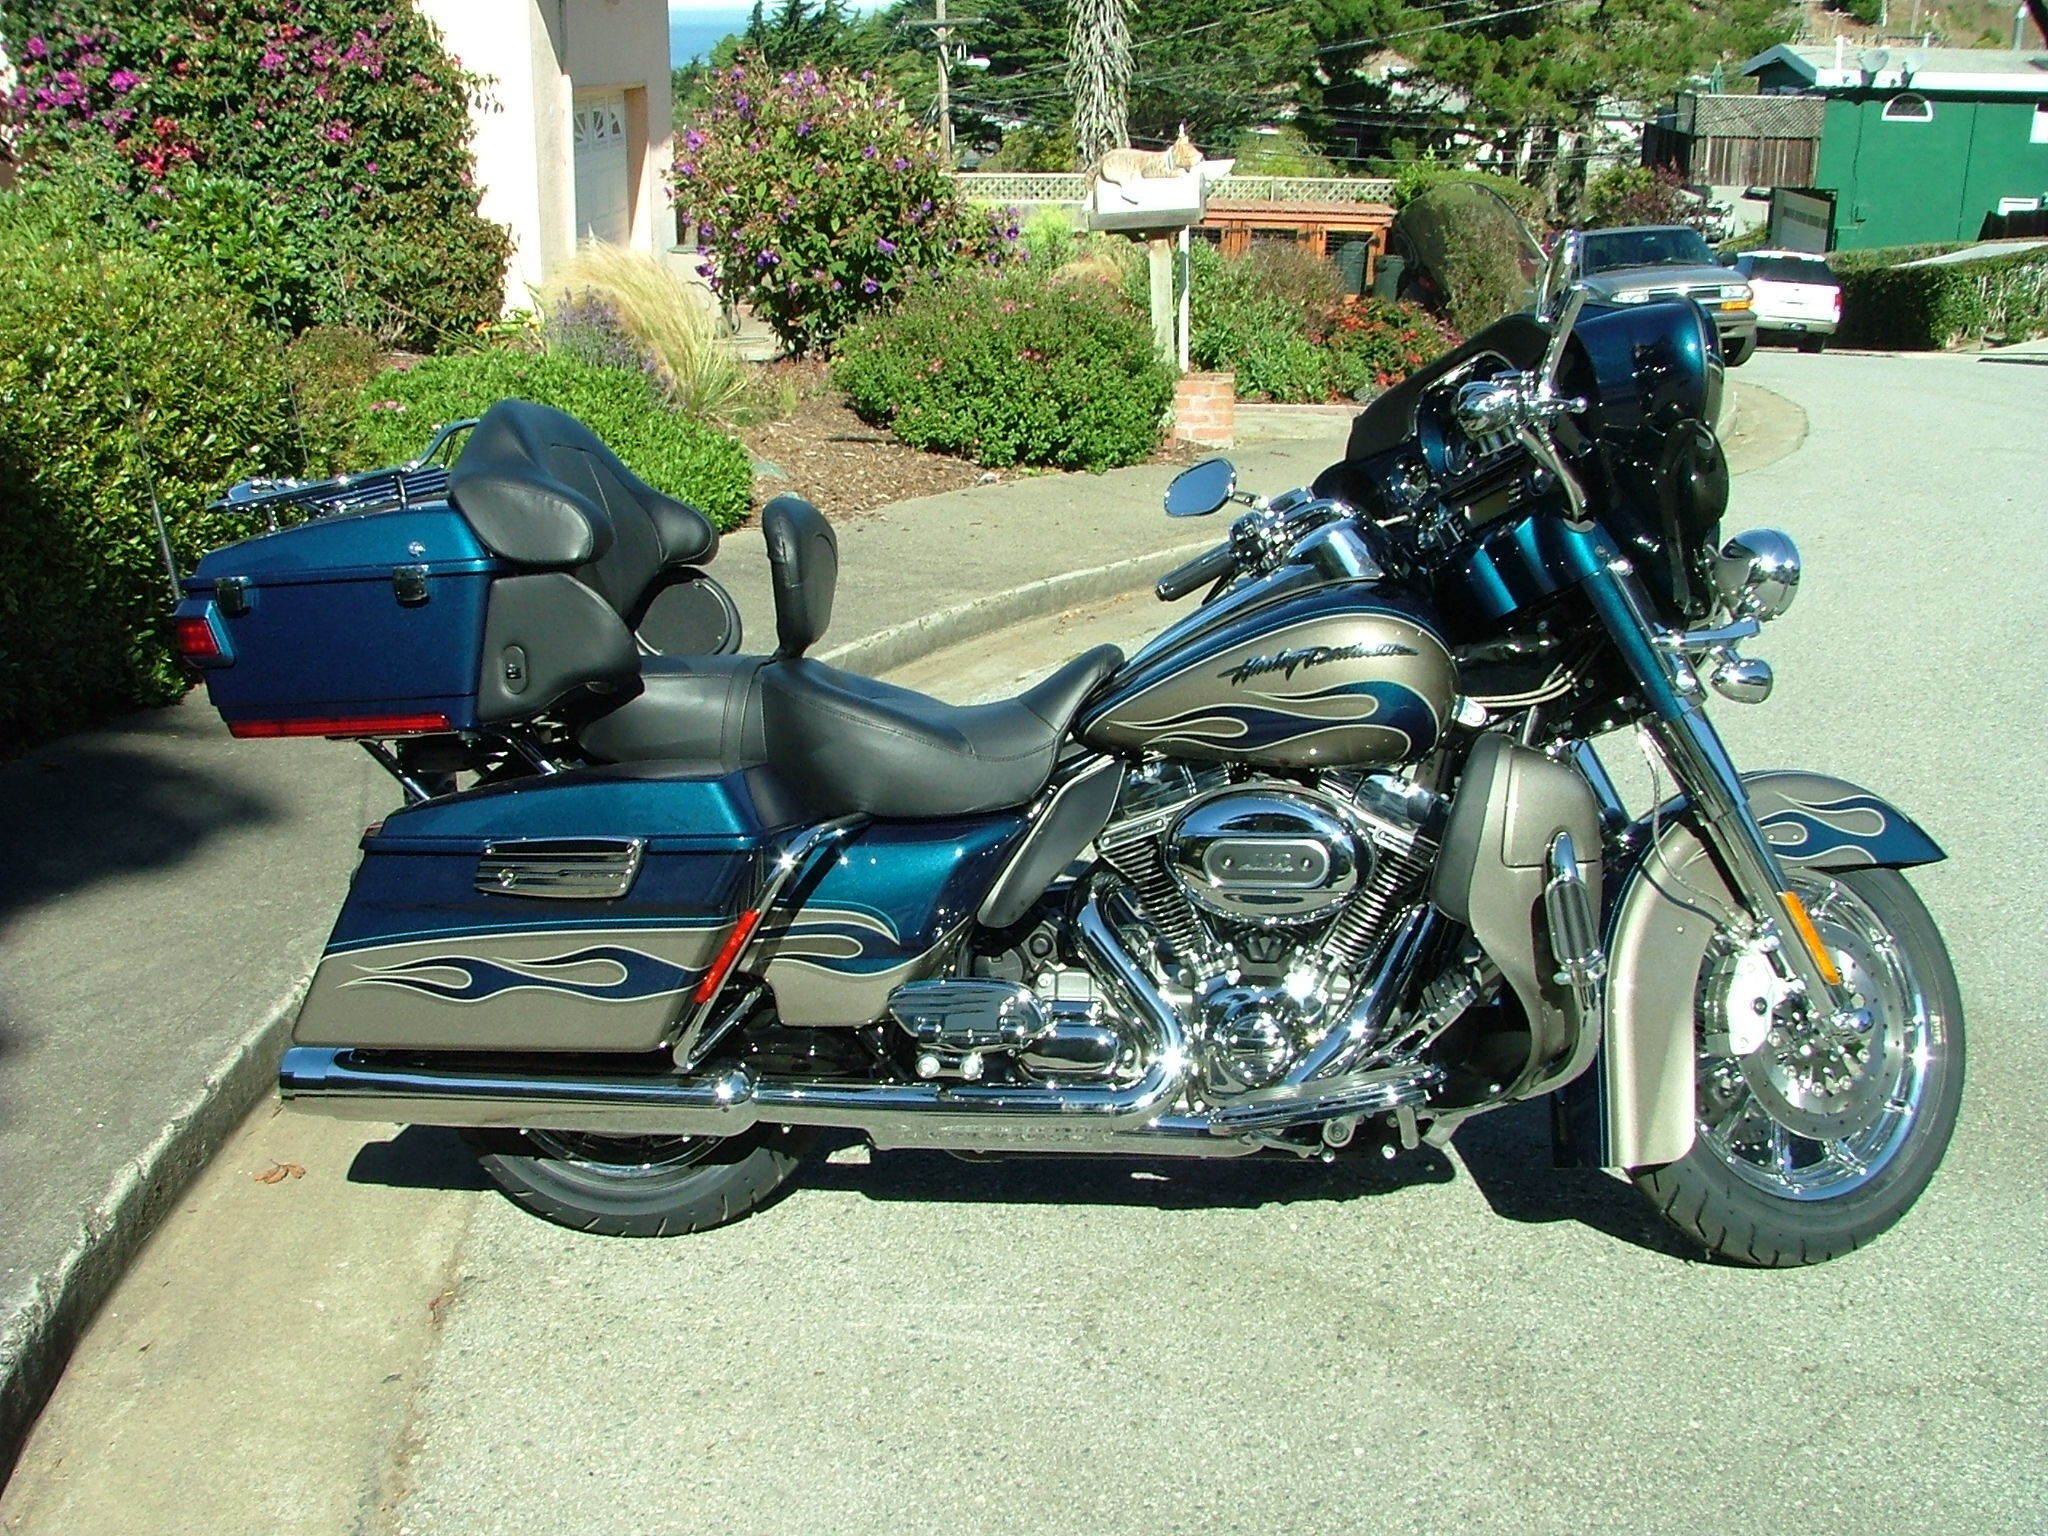 2010 harley davidson flhtcuse5 cvo ultra classic electra glide riptide blue and titanium. Black Bedroom Furniture Sets. Home Design Ideas